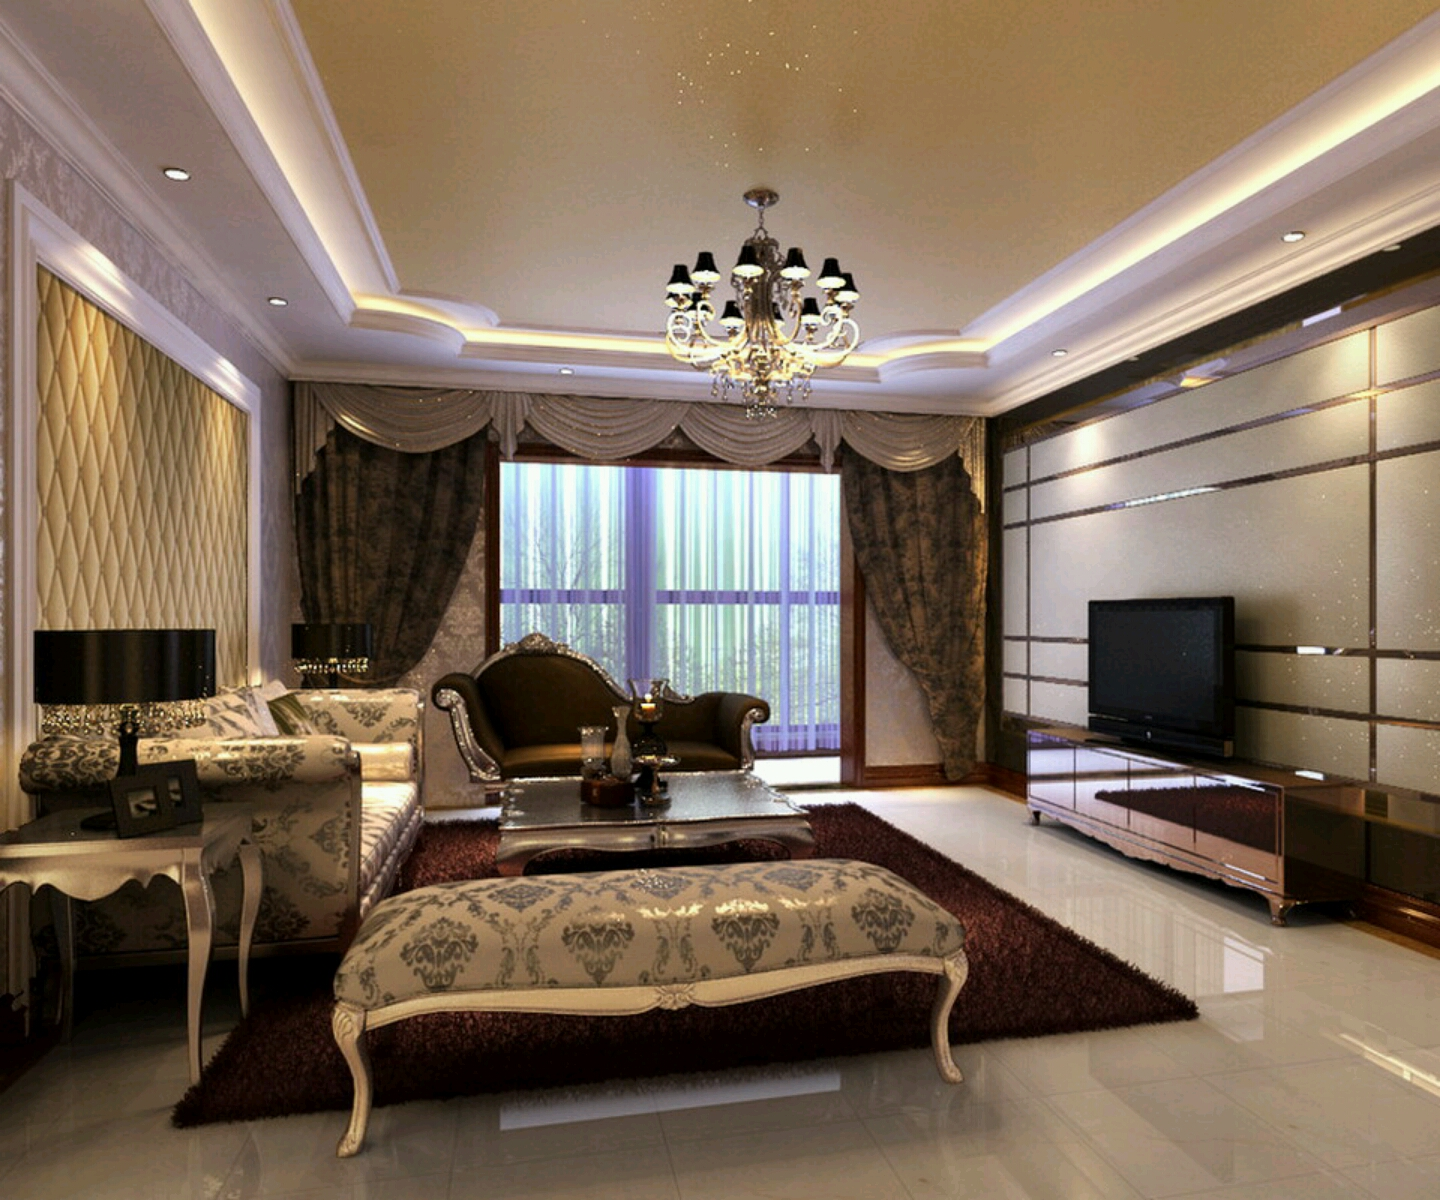 Interior decorating ideas living rooms dream house Interior decoration for living room